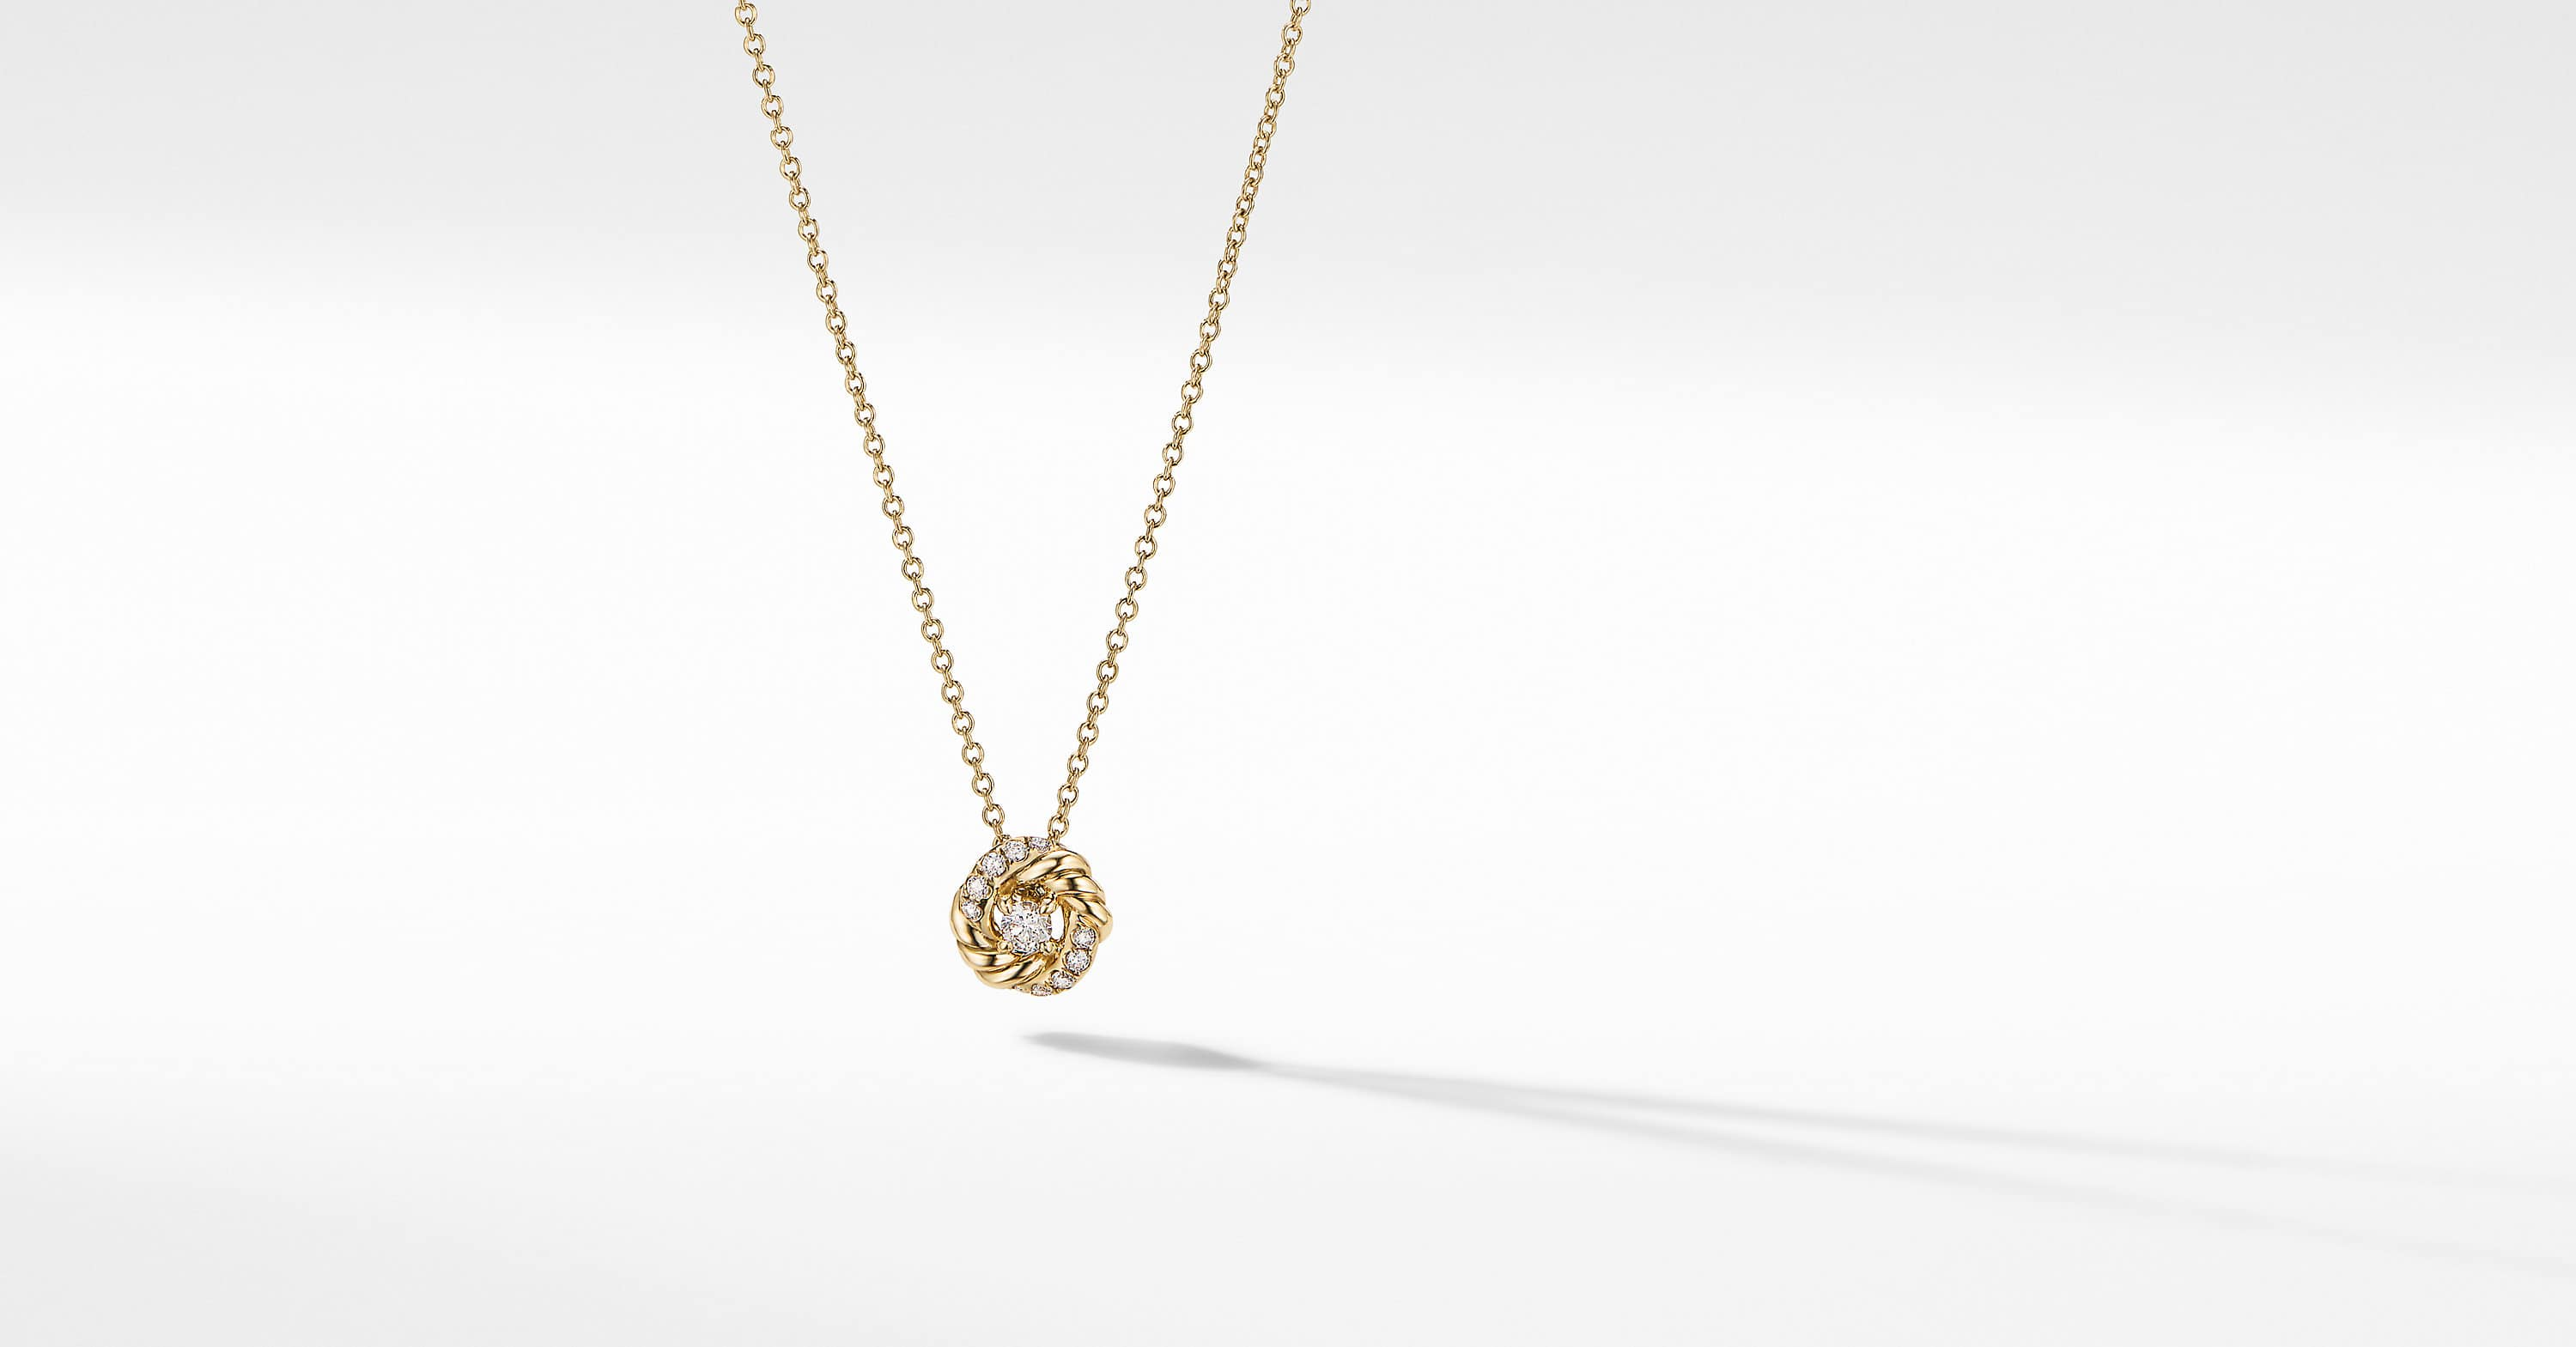 Petite Infinity Pendant Necklace in 18K Yellow Gold with Diamonds, 8mm